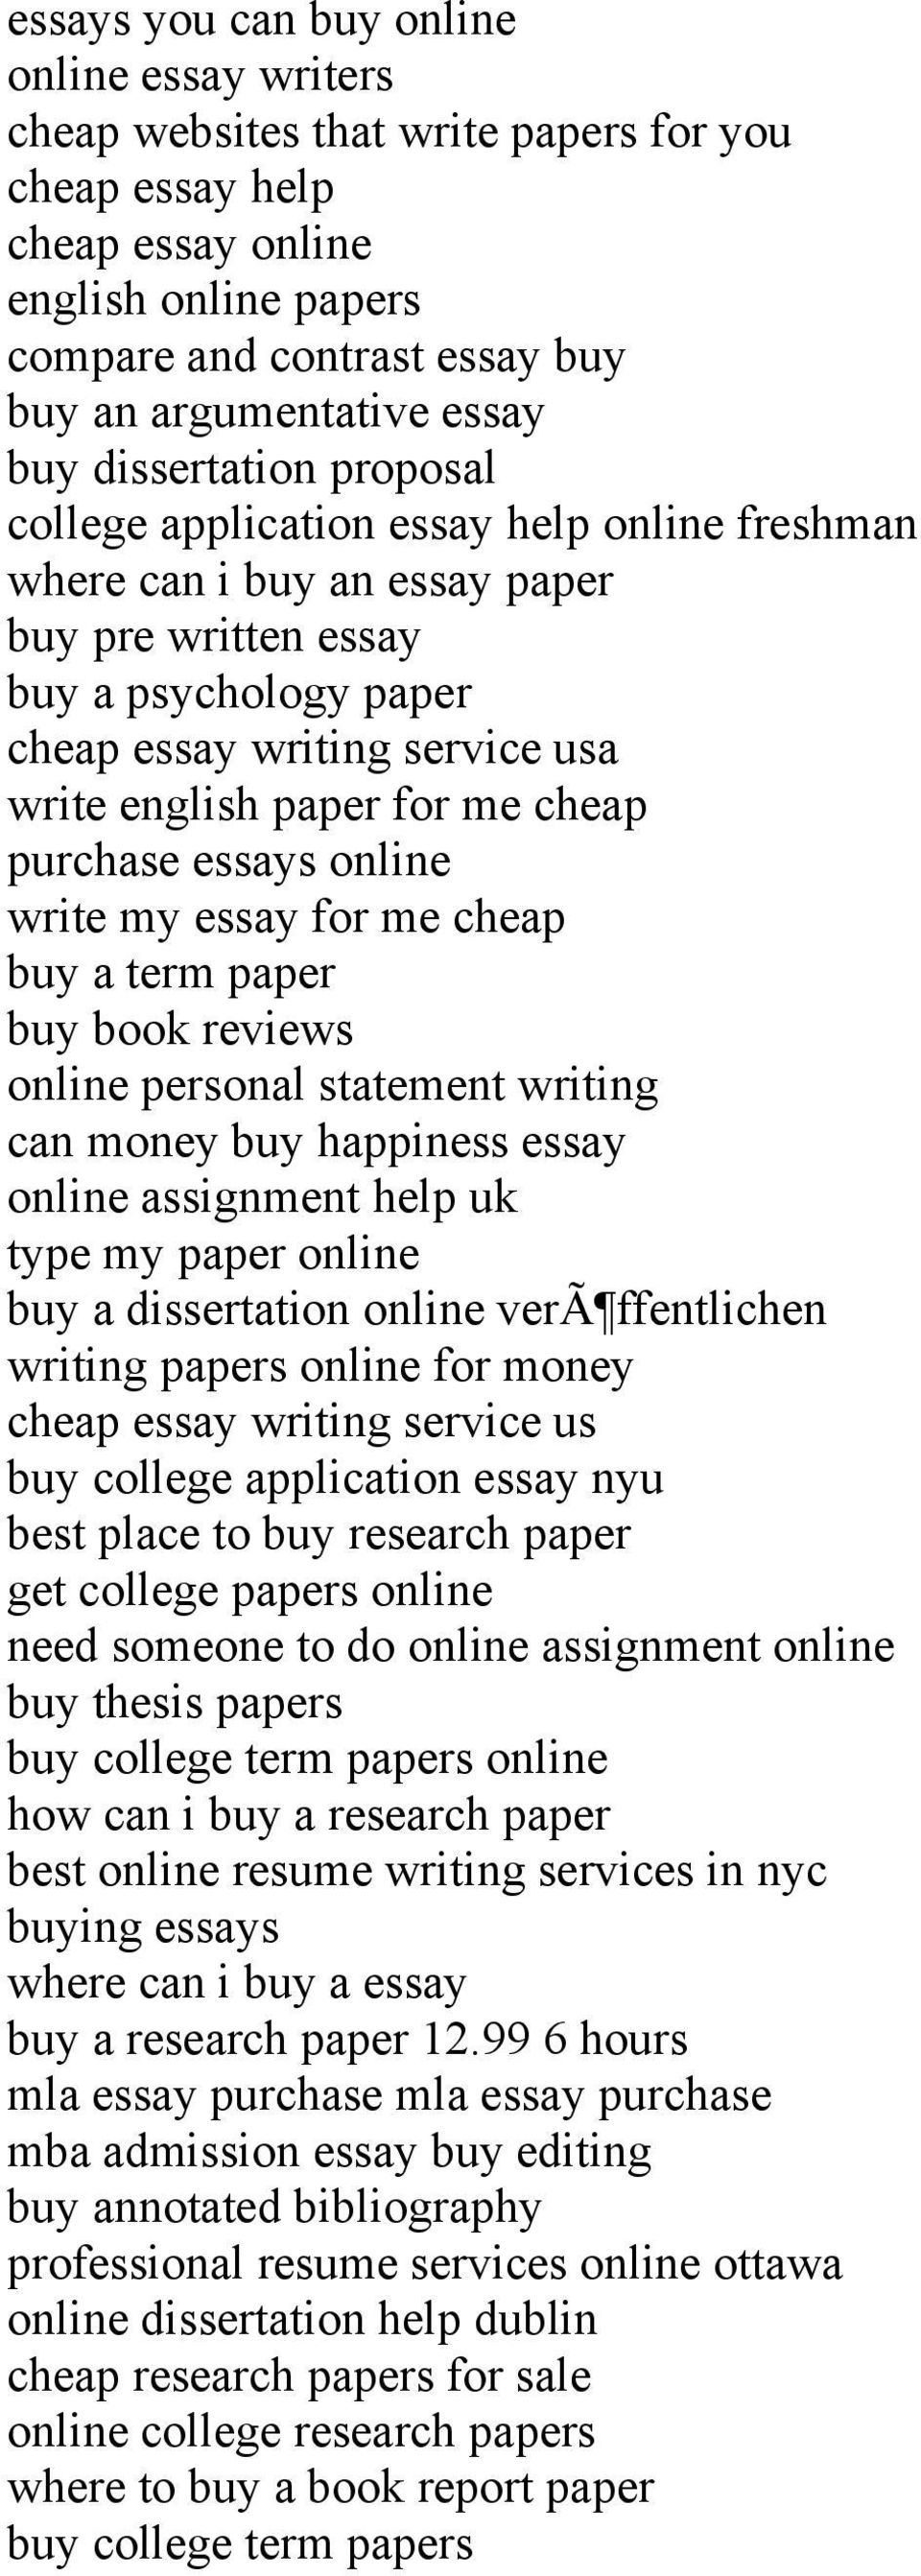 english paper for me cheap purchase essays online write my essay for me cheap buy a term paper buy book reviews online personal statement writing can money buy happiness essay online assignment help